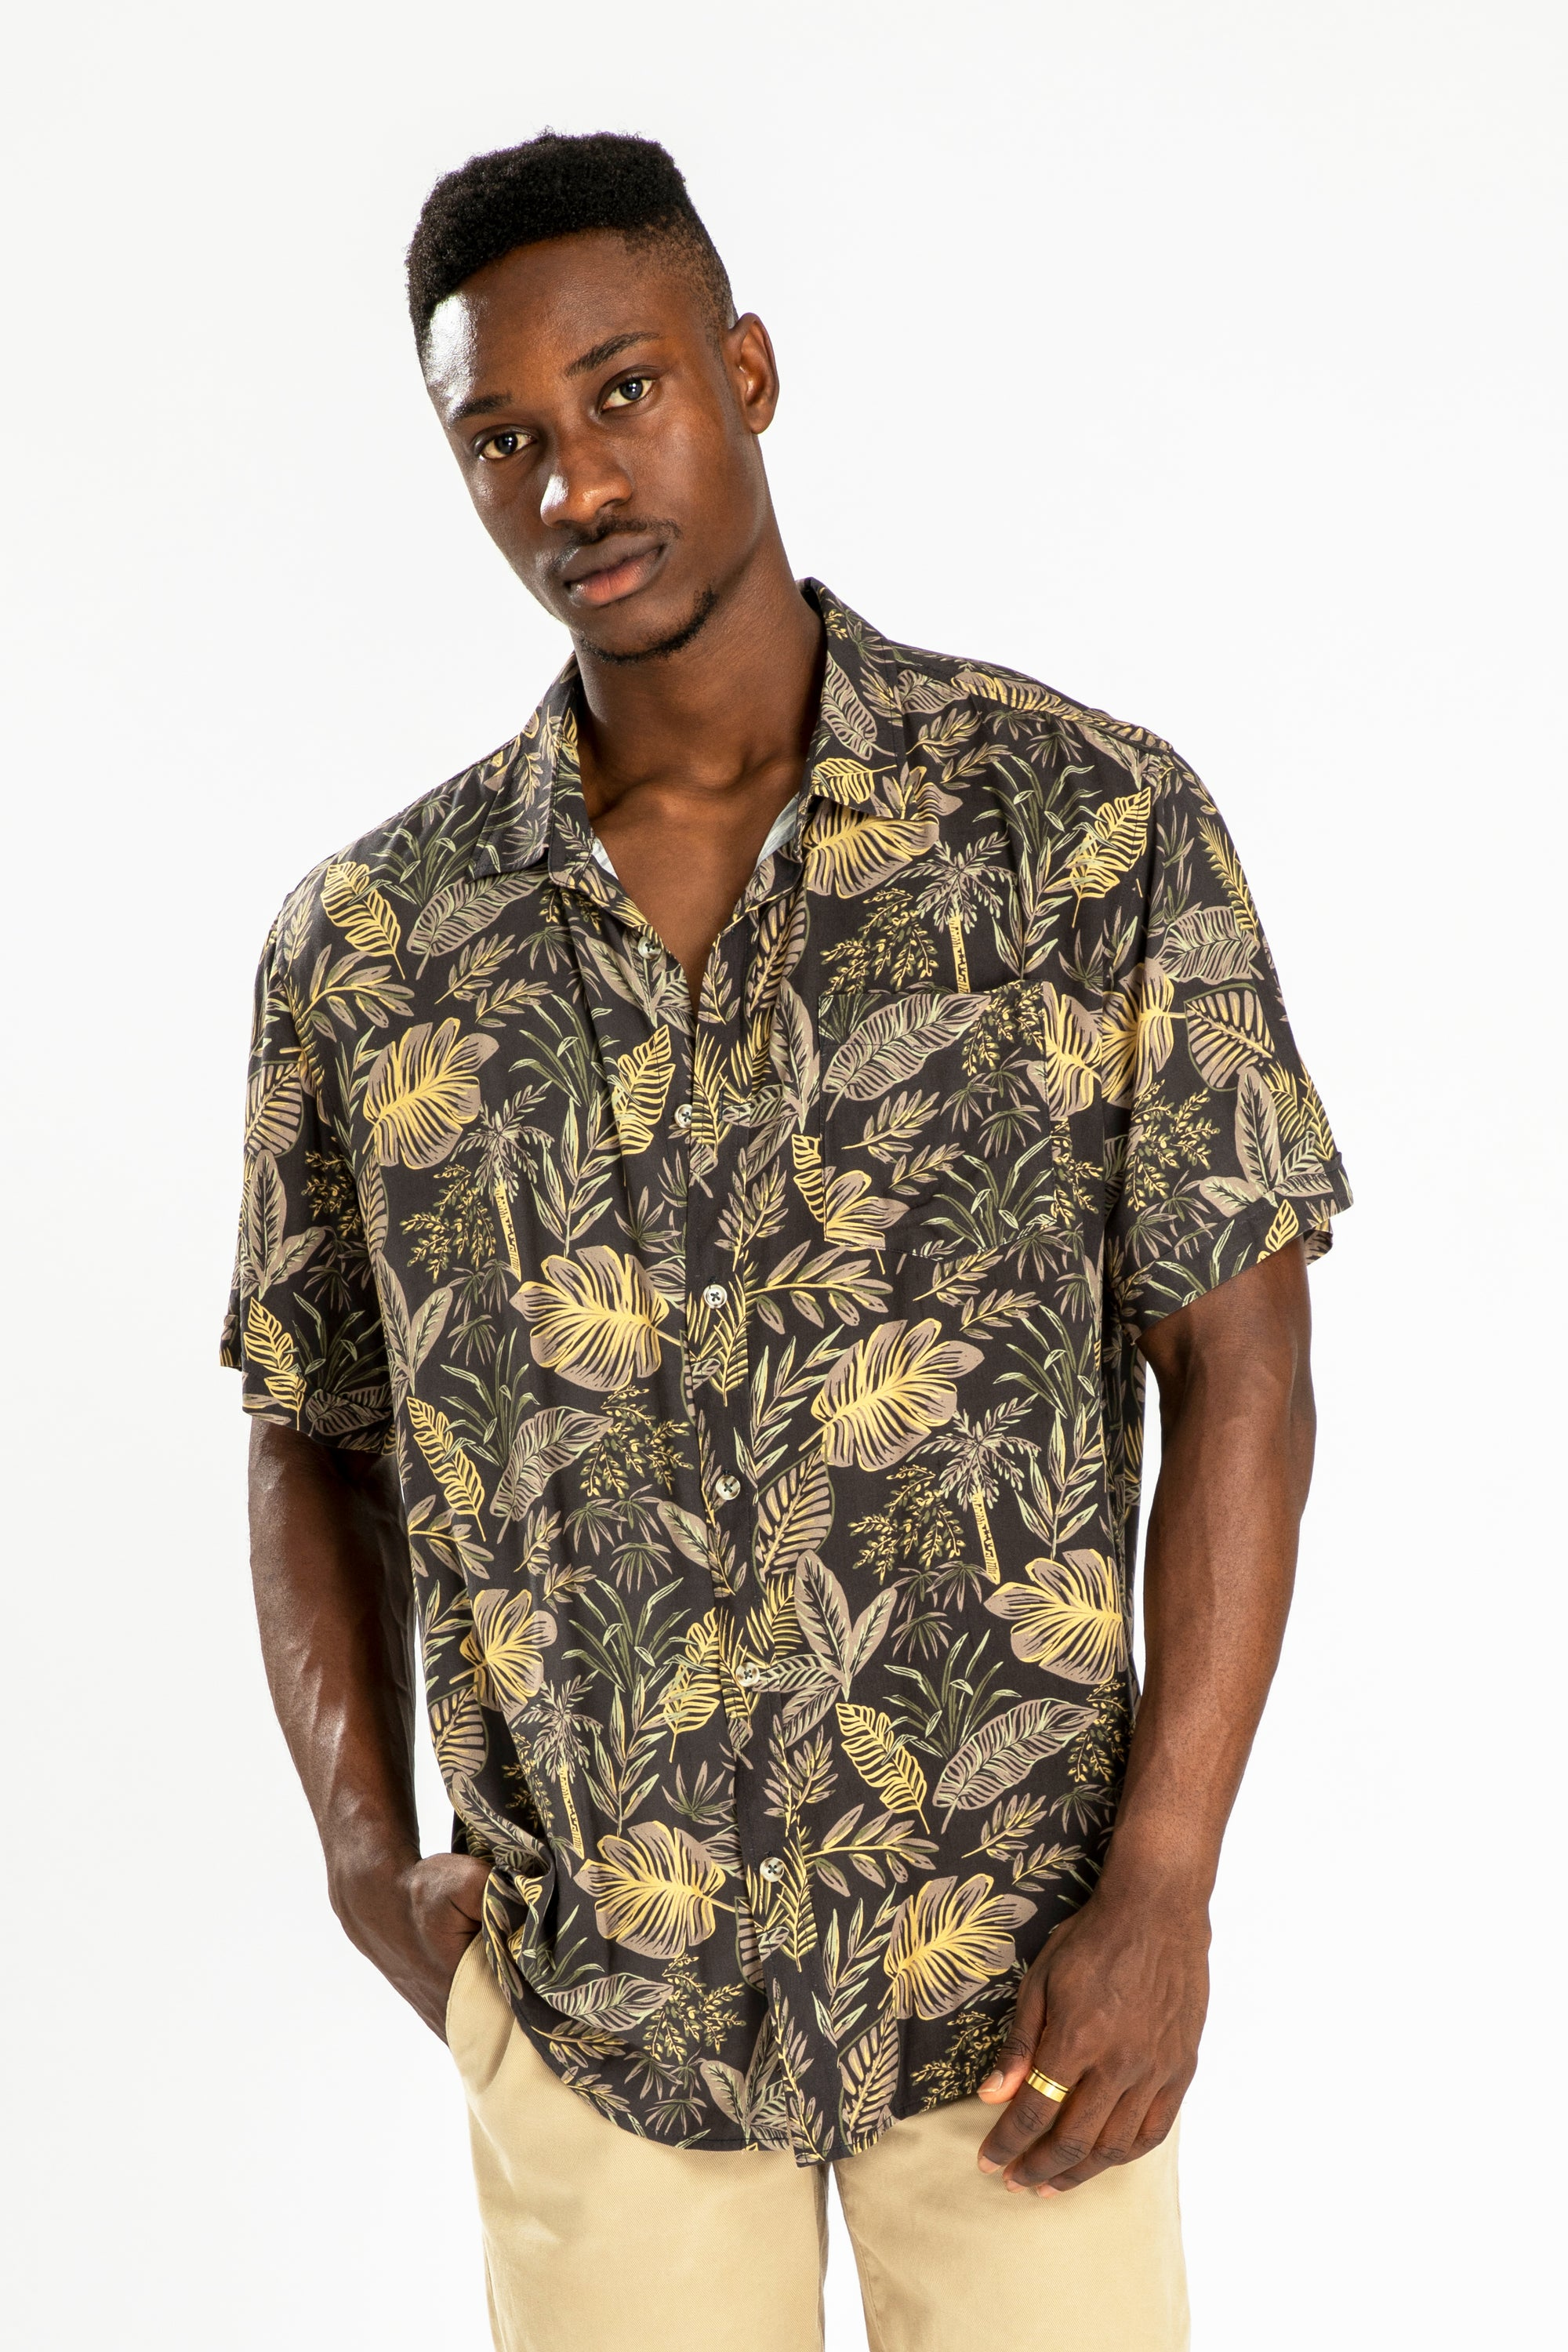 men's short sleeve party shirt by Poolside Party Shirts with tropical leaf textile print front view